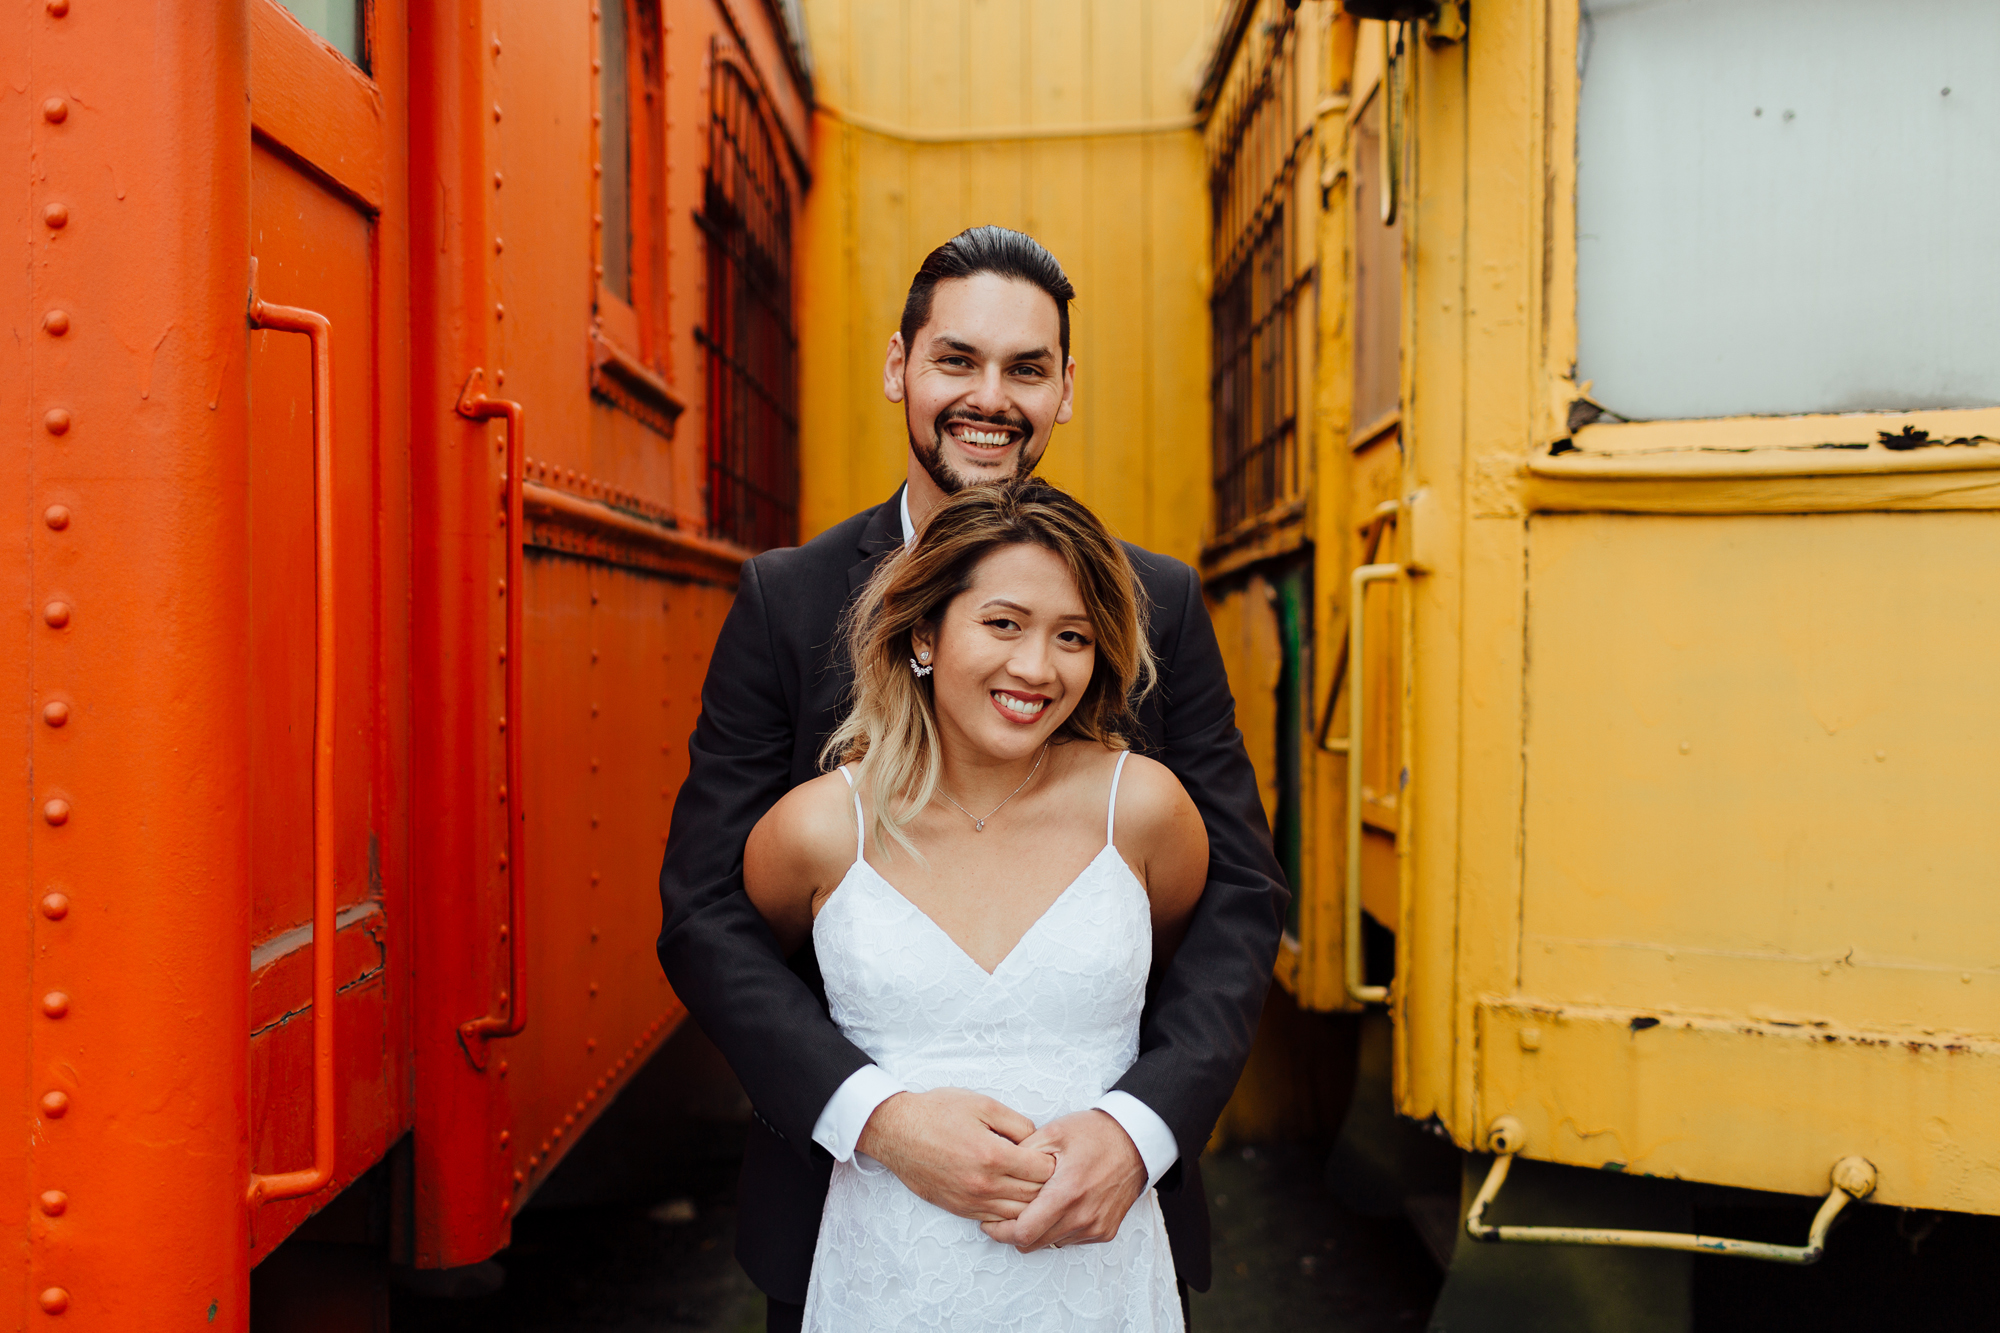 Seattle Rooftop Courthouse Wedding Photos by Krista Welch00027.jpg